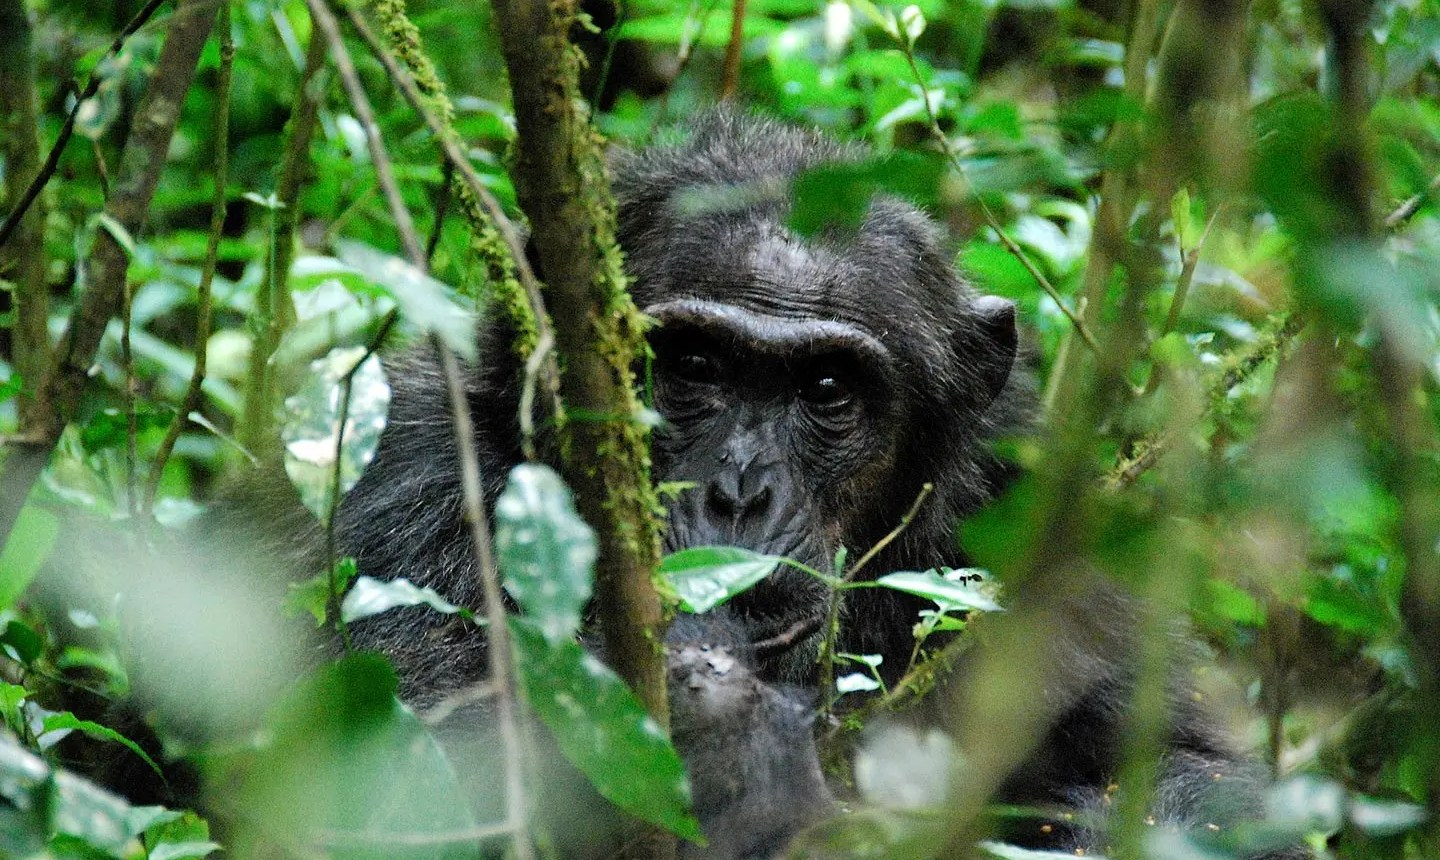 Chimpanzee Tracking in Kibale Forest National Park - Chimpanzee Tracking